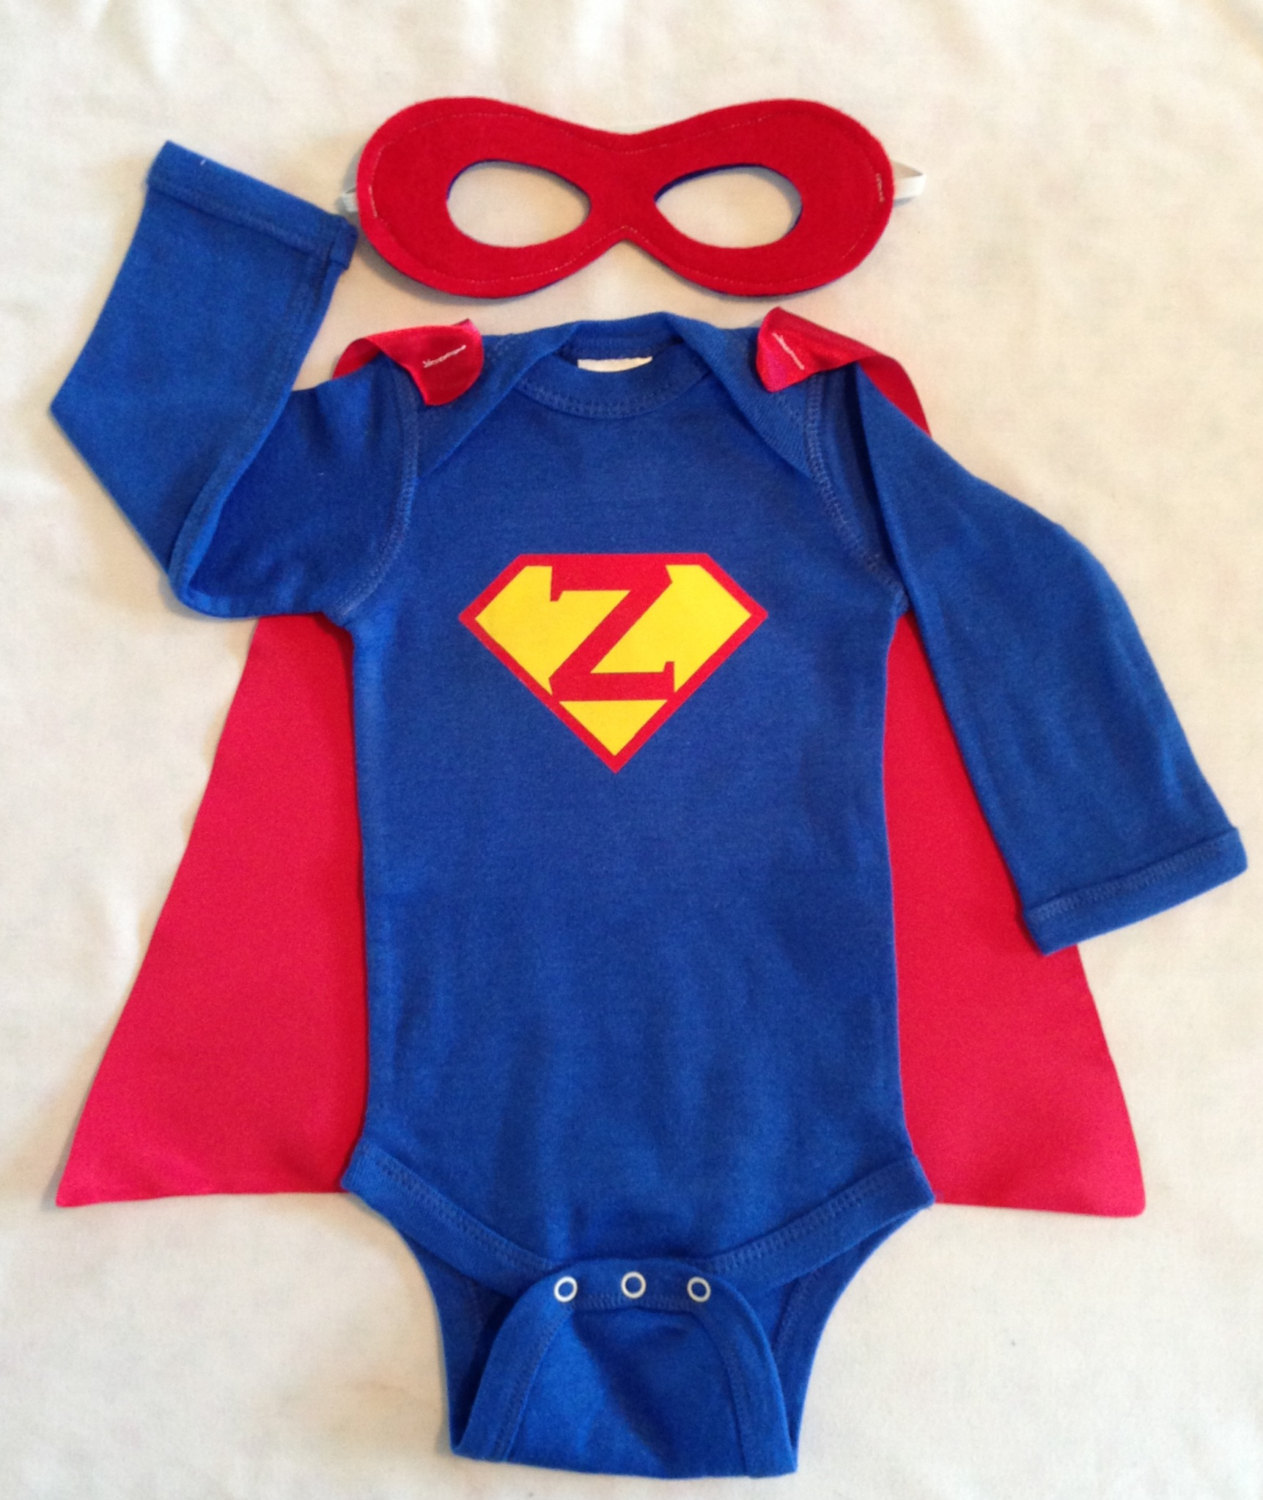 Personalized Superman or Superwoman Superhero Baby Outfit with Detachable Satin Cape and Reversible Mask Super  sc 1 st  Just Kidu0027n! Designs LLC - Storenvy & Personalized Superman or Superwoman Superhero Baby Outfit with ...